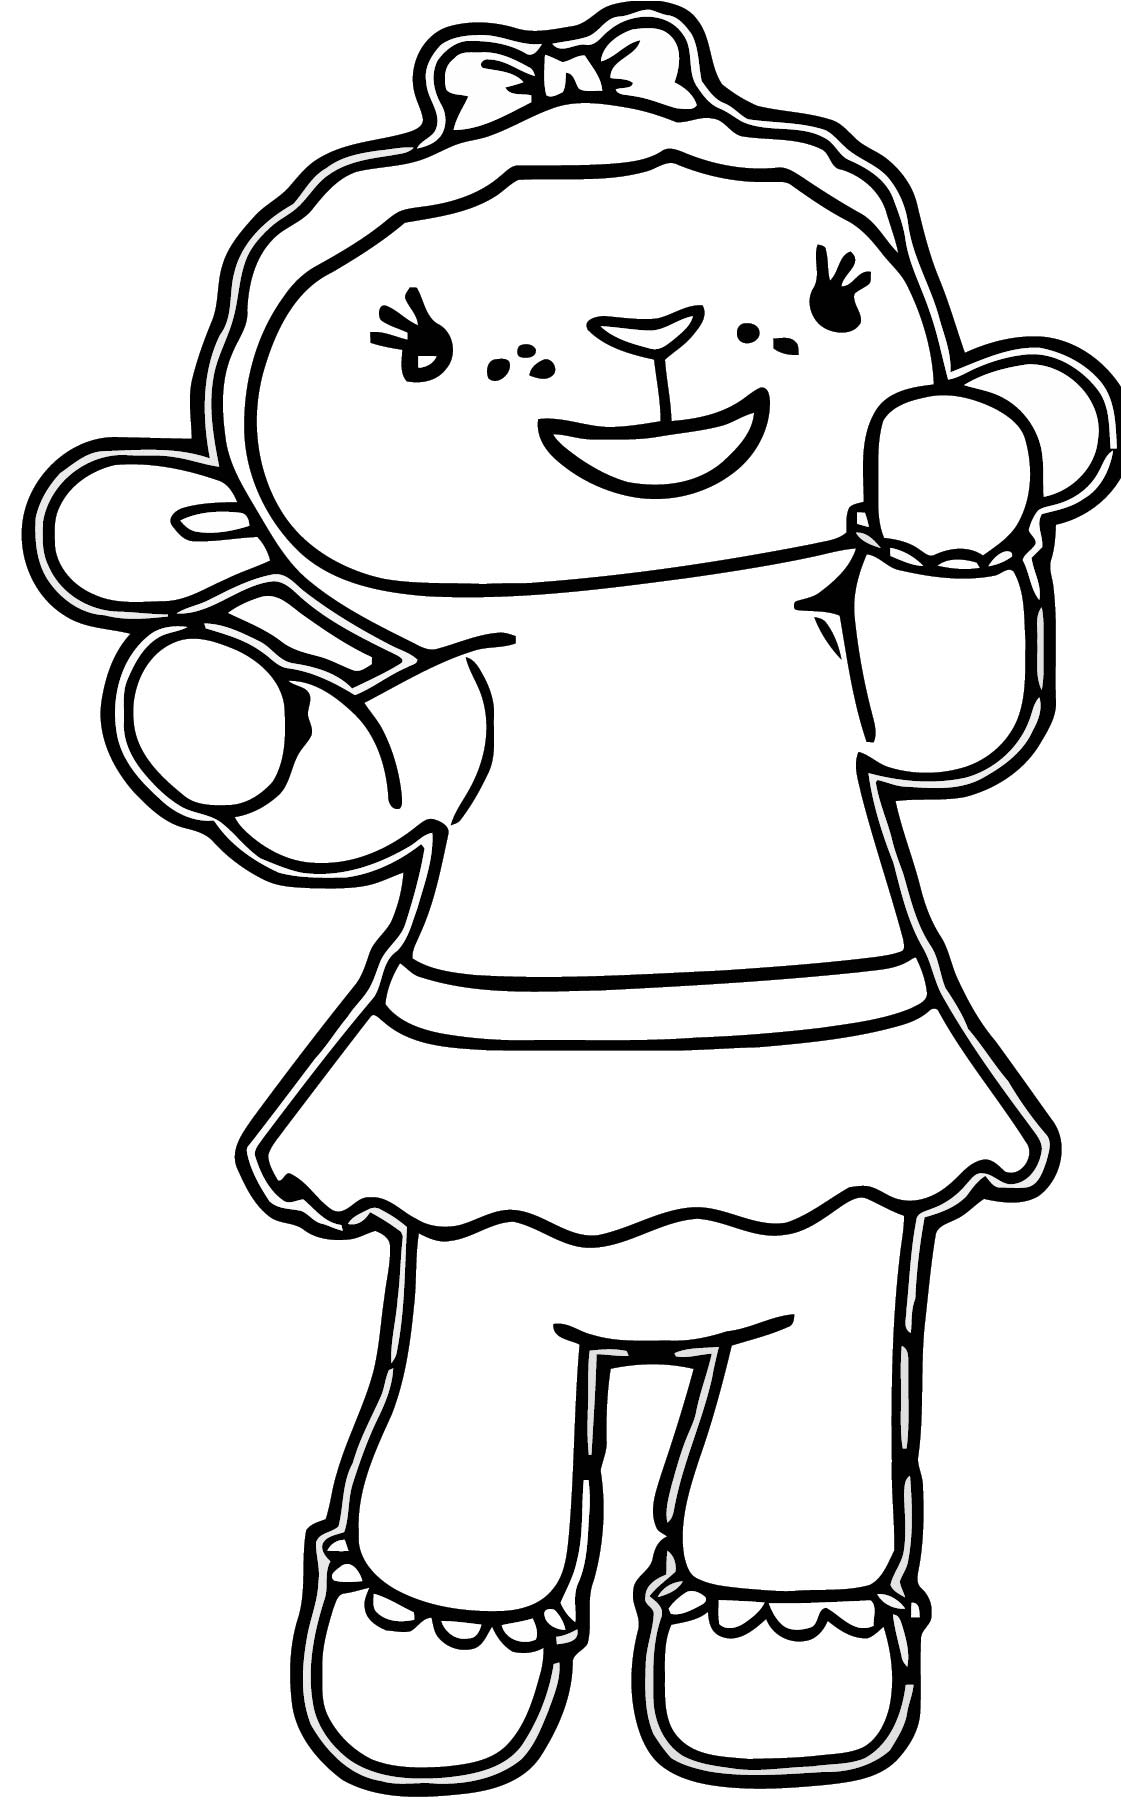 lambie 5 coloring page